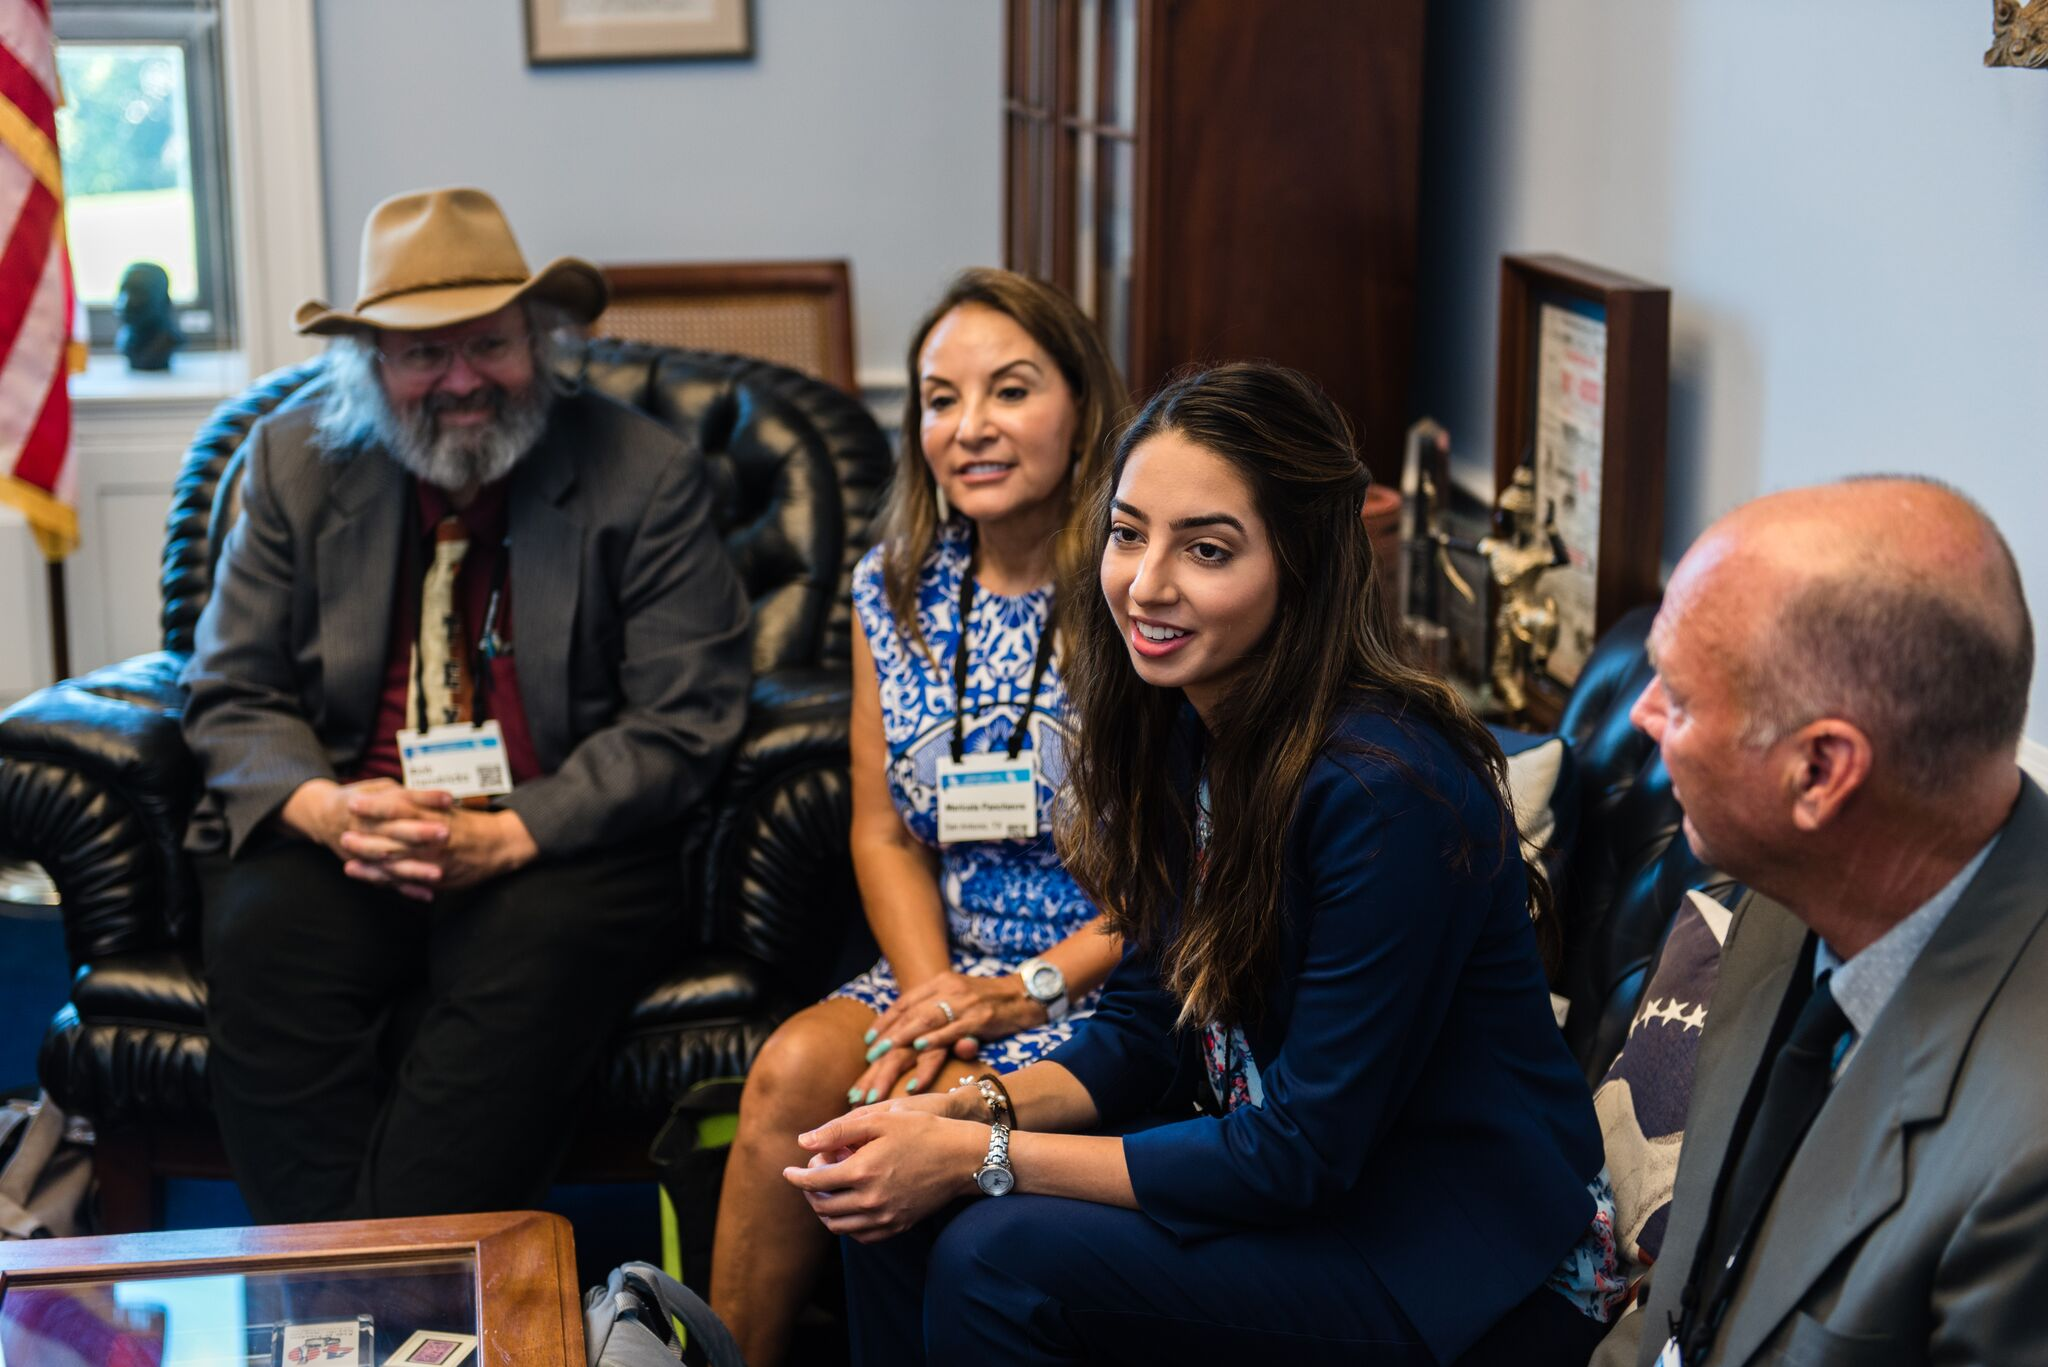 Samantha Pancheve and her mom in a lobby meeting with member of Congress.